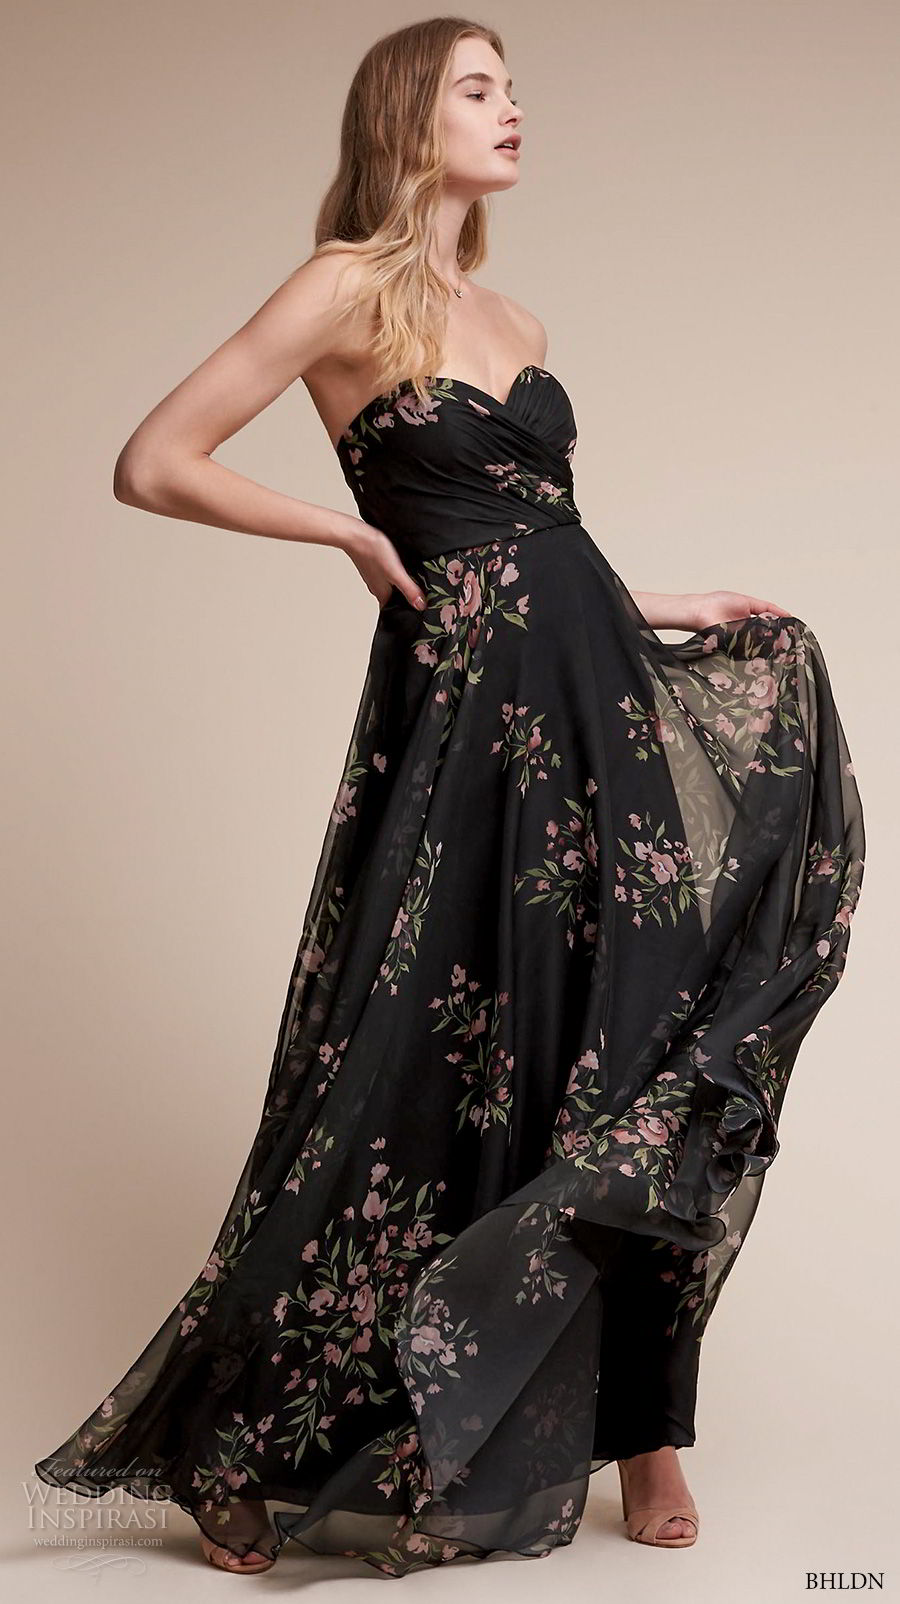 bhldn fall 2017  americana bridal strapless sweetheart neckline ruched wrap over bodice flora prints black color high waist soft a  line wedding dress sweep train (adeline) mv